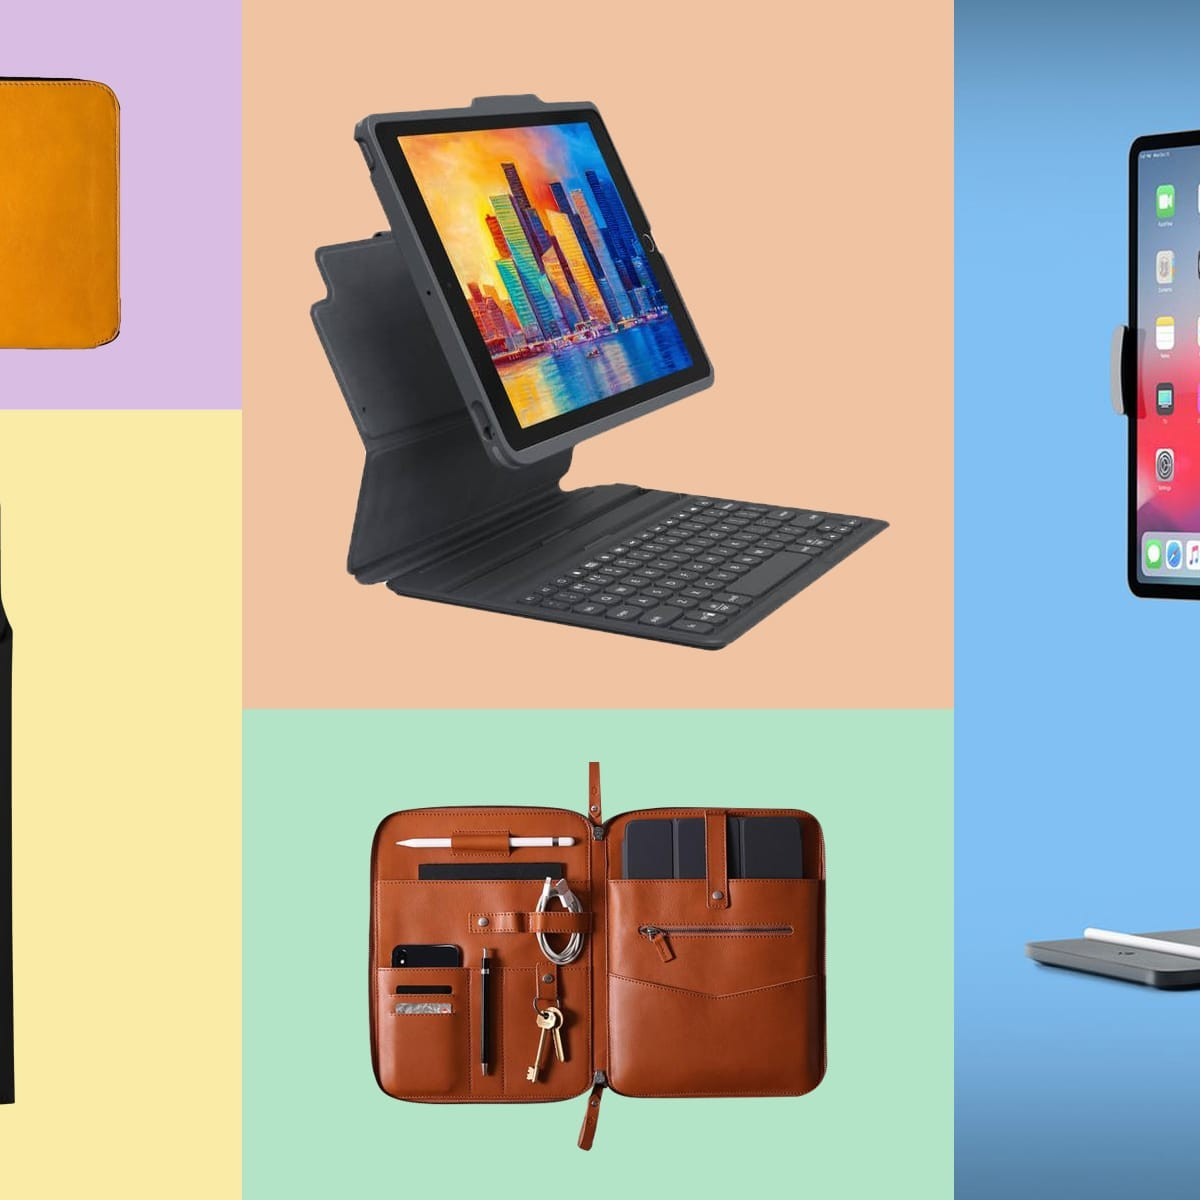 The best iPad Pro gadgets you can buy now thumbnail